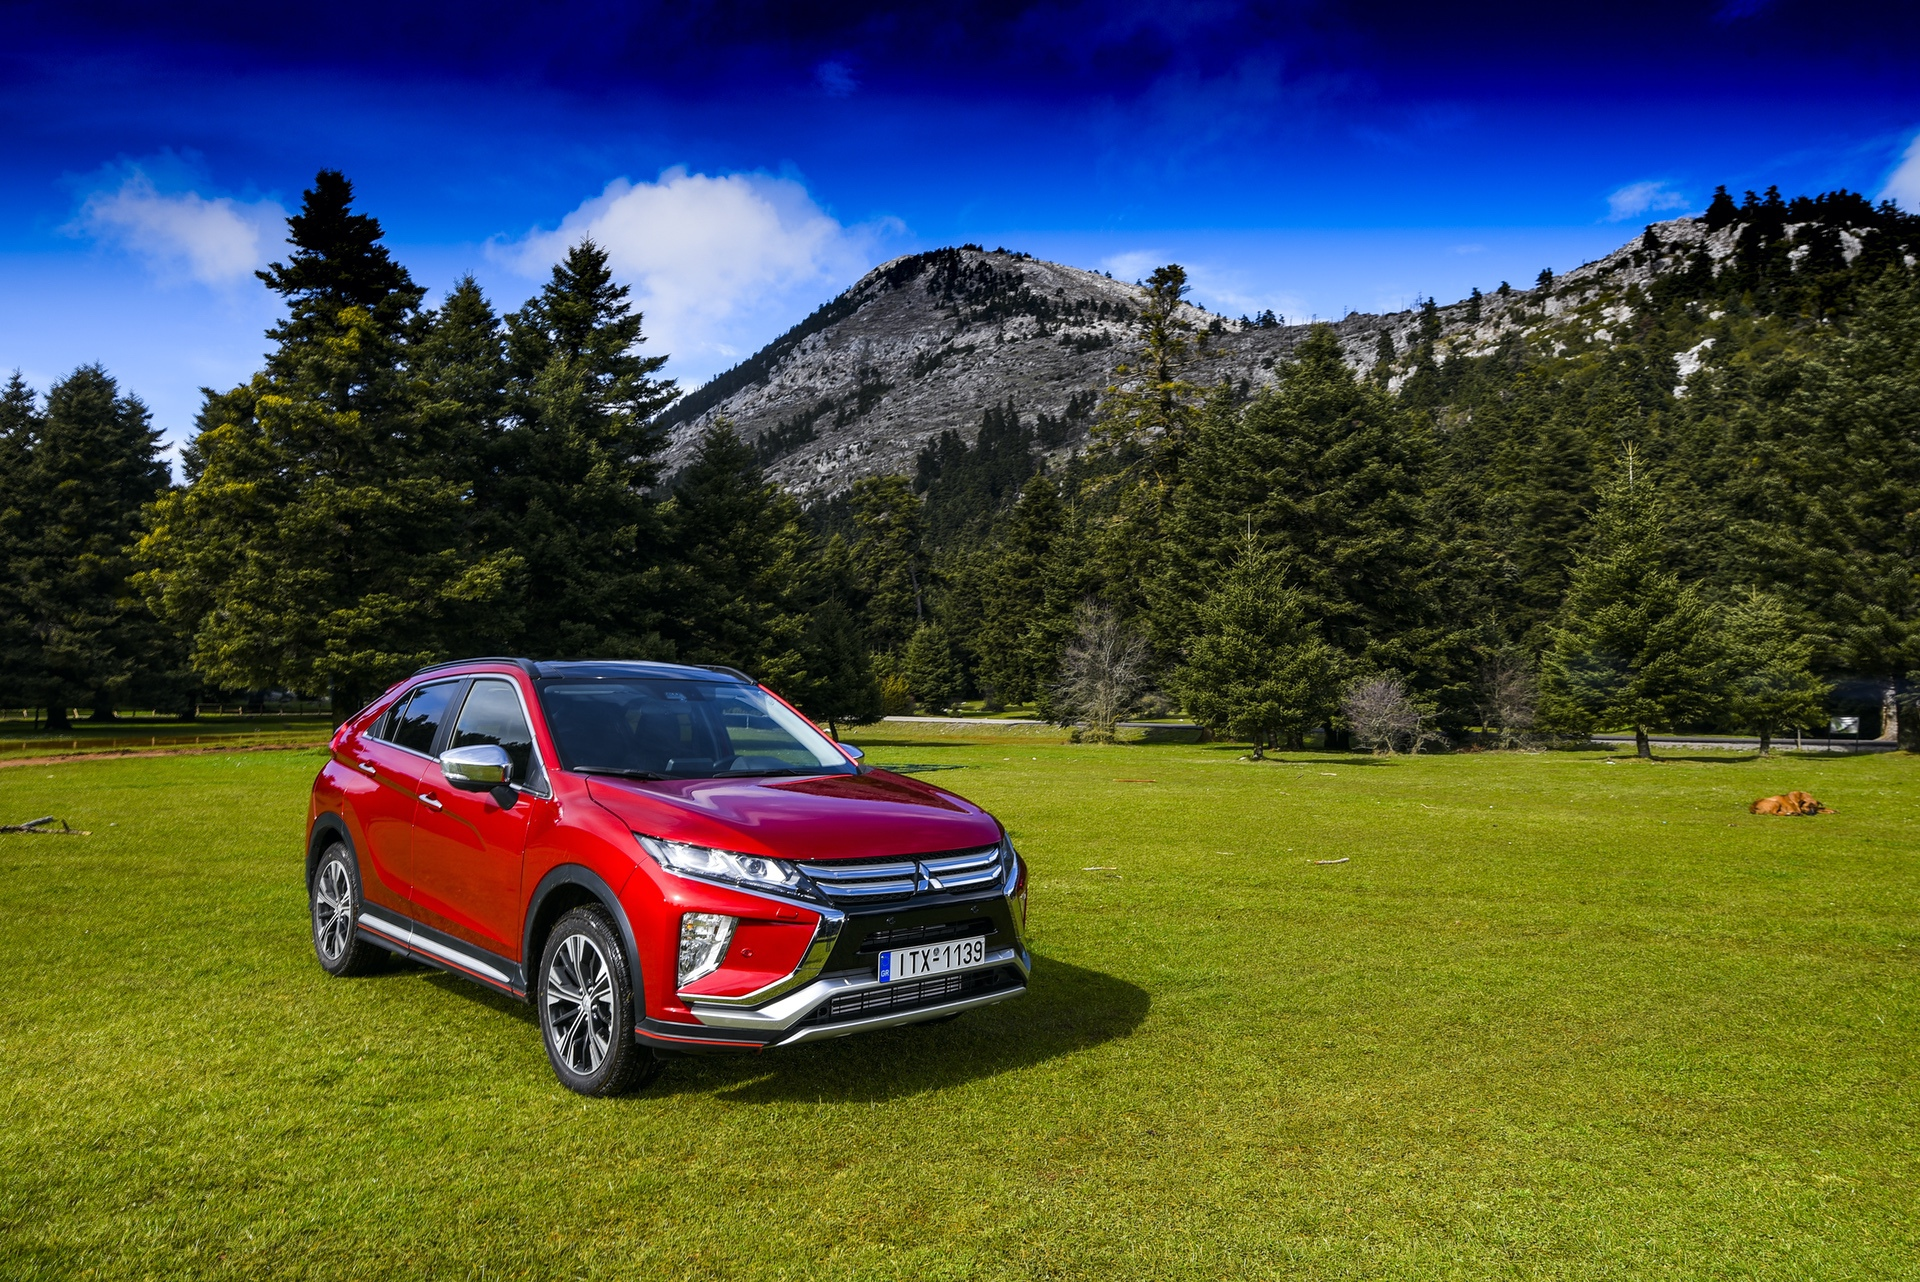 Mitsubishi_Eclipse_Cross_Greek_presskit_0029